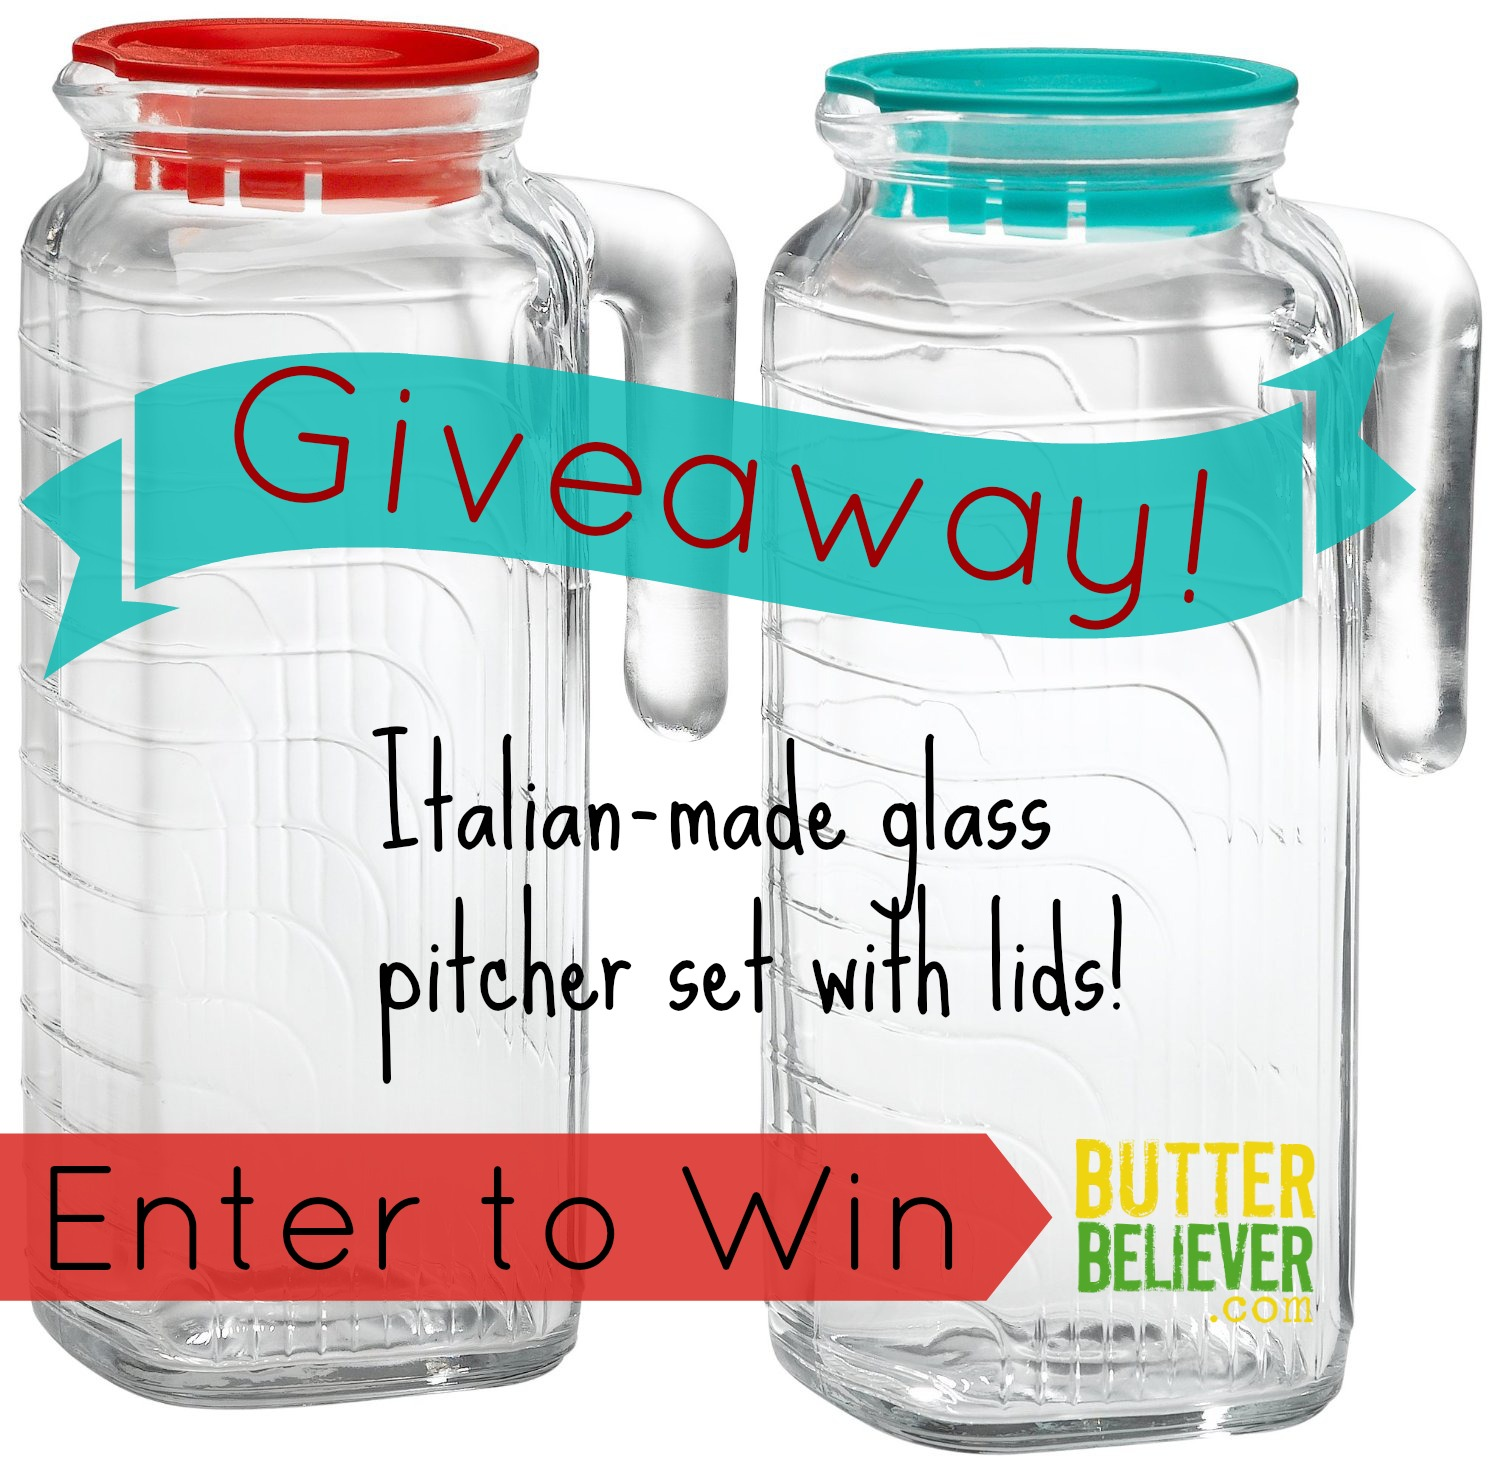 Cheerful Lids From Butter Glass Pitcher Set Butter Believer Small Glass Pitcher Lid Canada Lid Glass Pitcher Glass Pitchers Enter To Win A Set houzz 01 Glass Pitcher With Lid